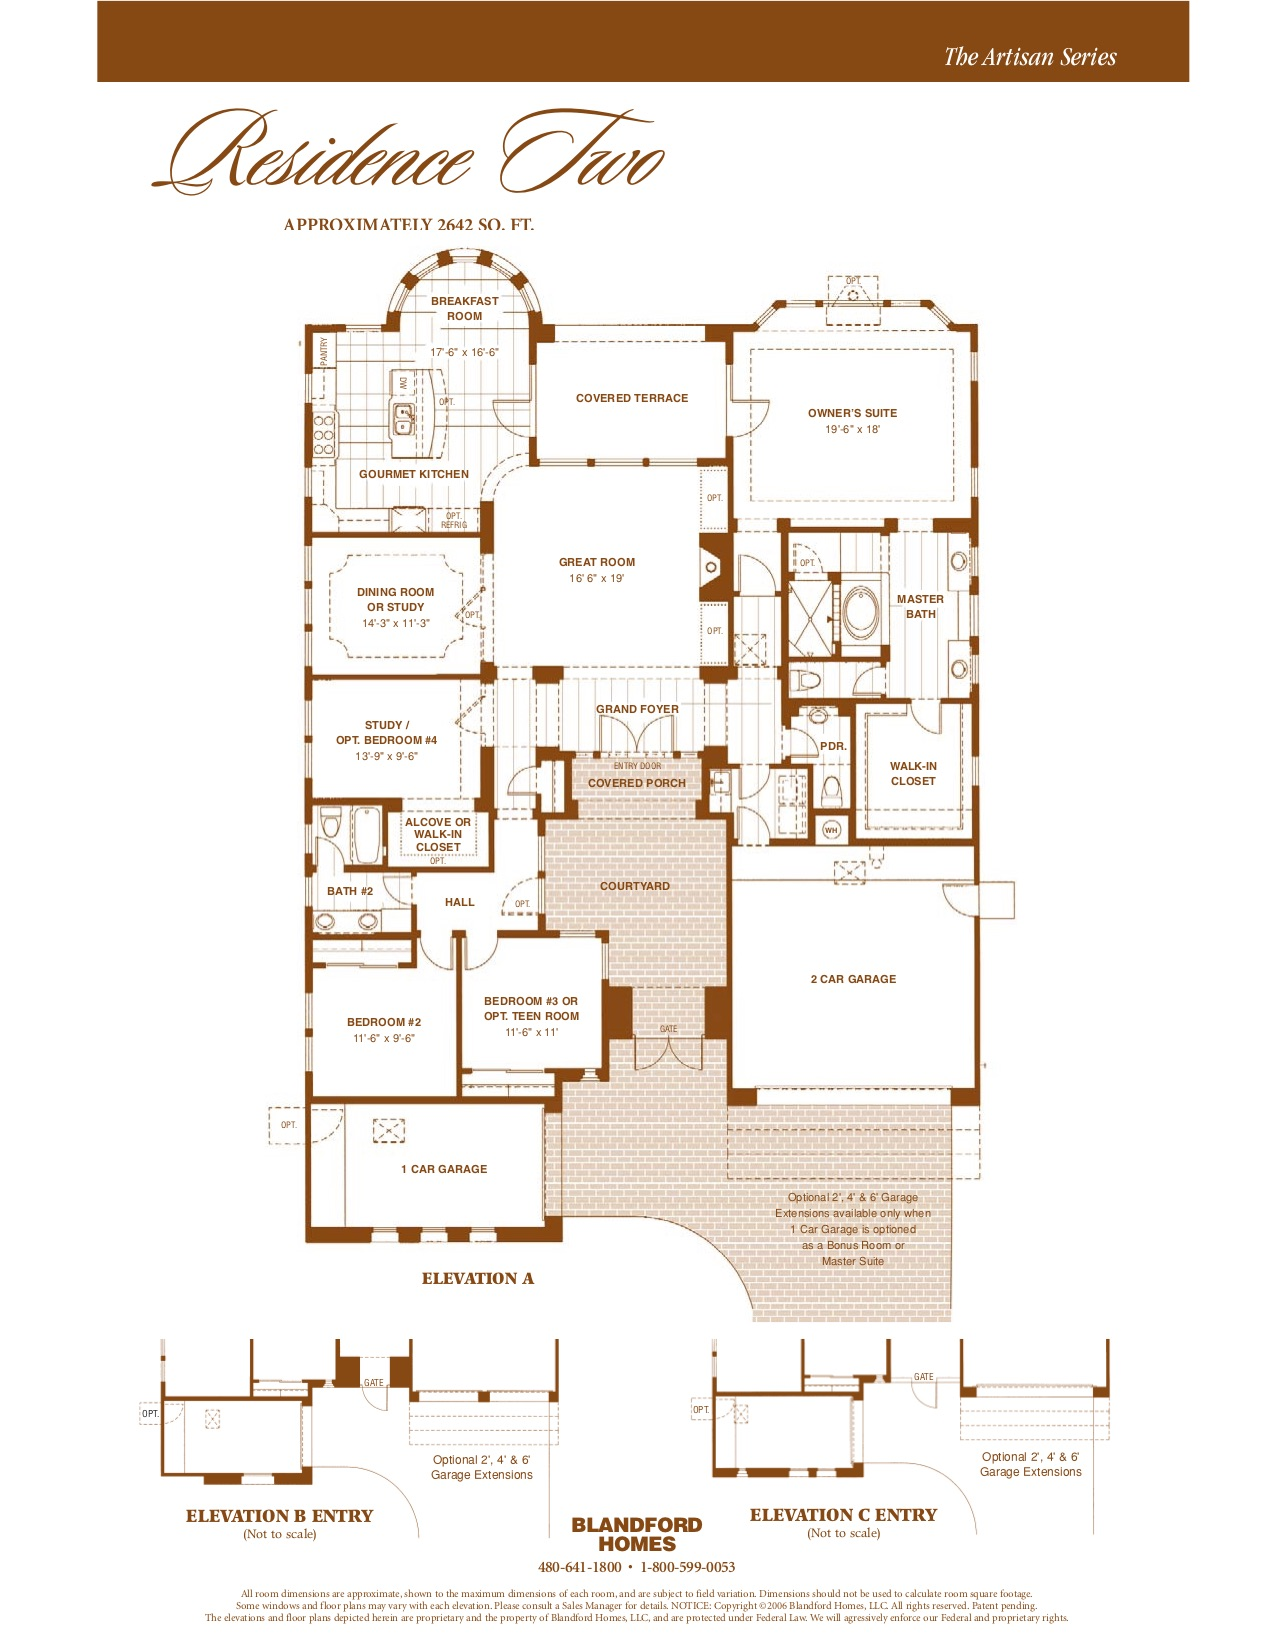 Artisan Res. Two 2642 SQ FT